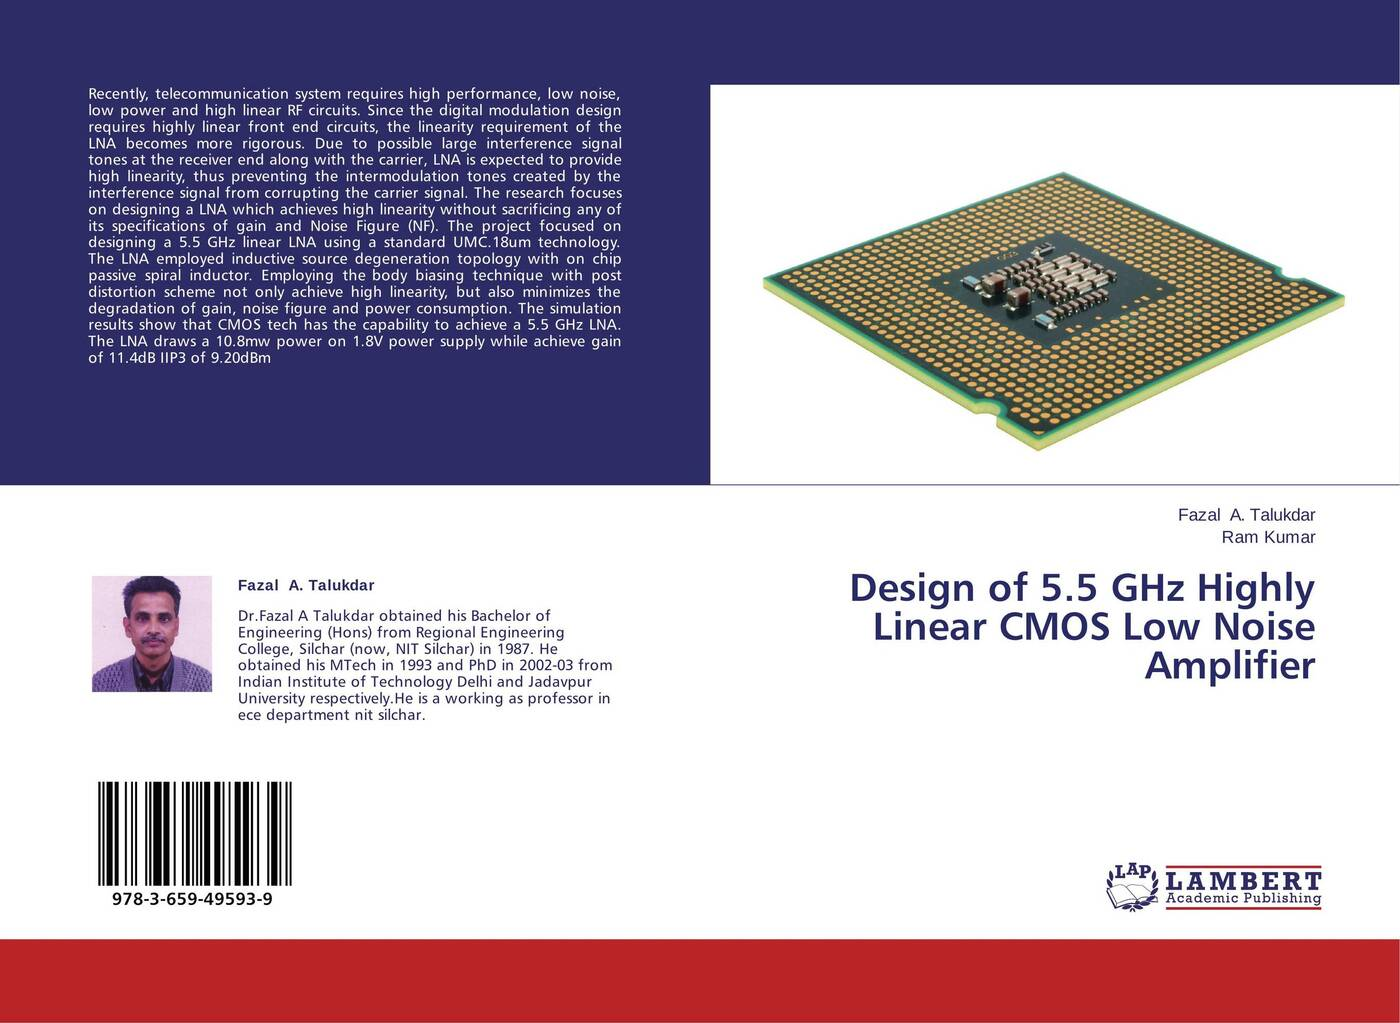 Fazal A. Talukdar and Ram Kumar Design of 5.5 GHz Highly Linear CMOS Low Noise Amplifier цена